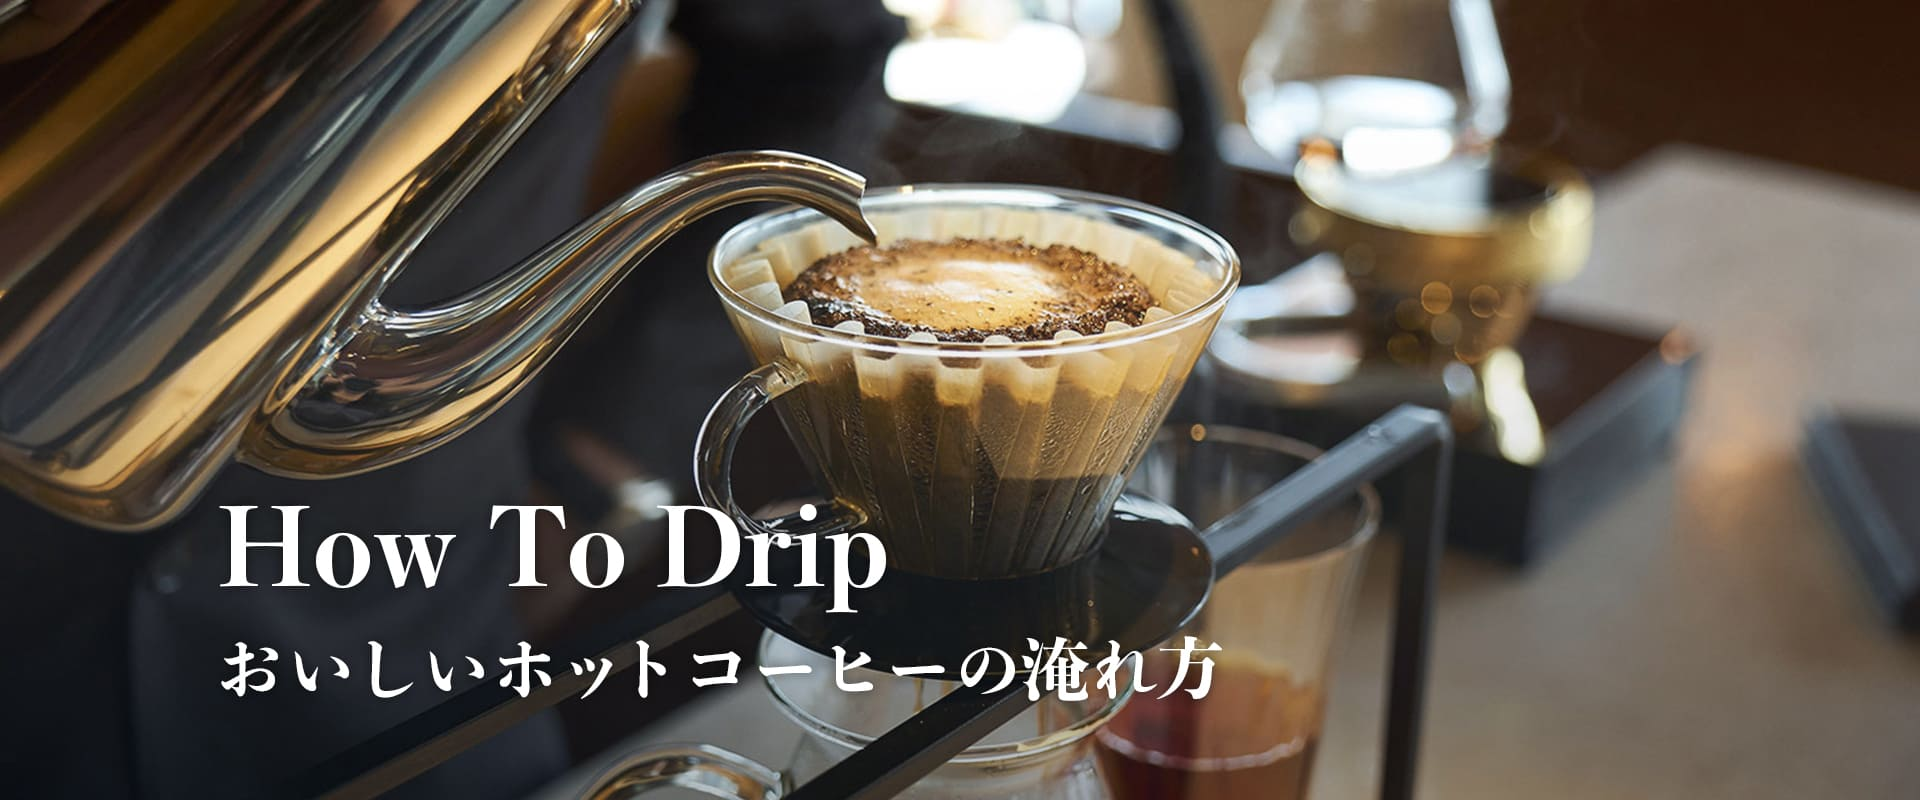 How To Drip おいしいホットコーヒーの淹れ方